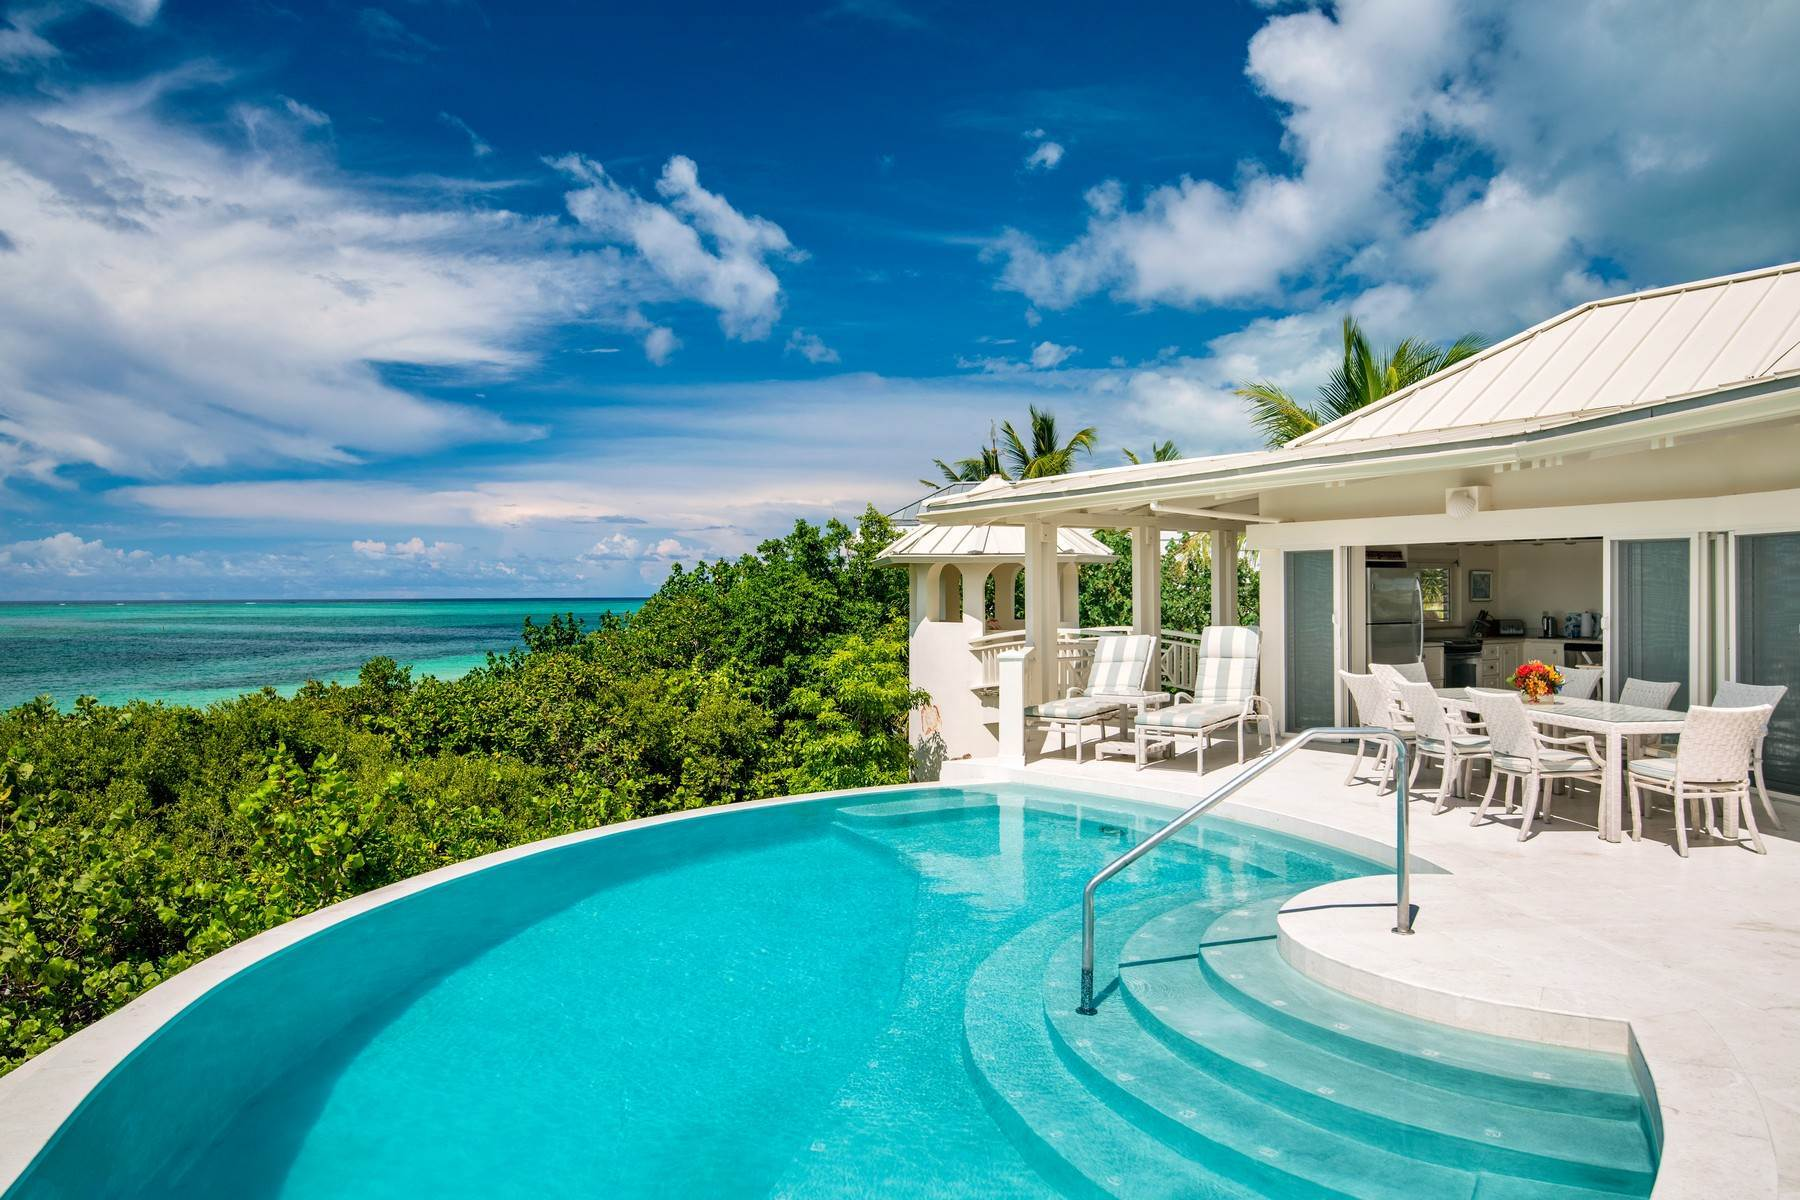 Single Family Homes for Sale at Turtle Beach Villa Turtle Cove, Providenciales Turks And Caicos Islands